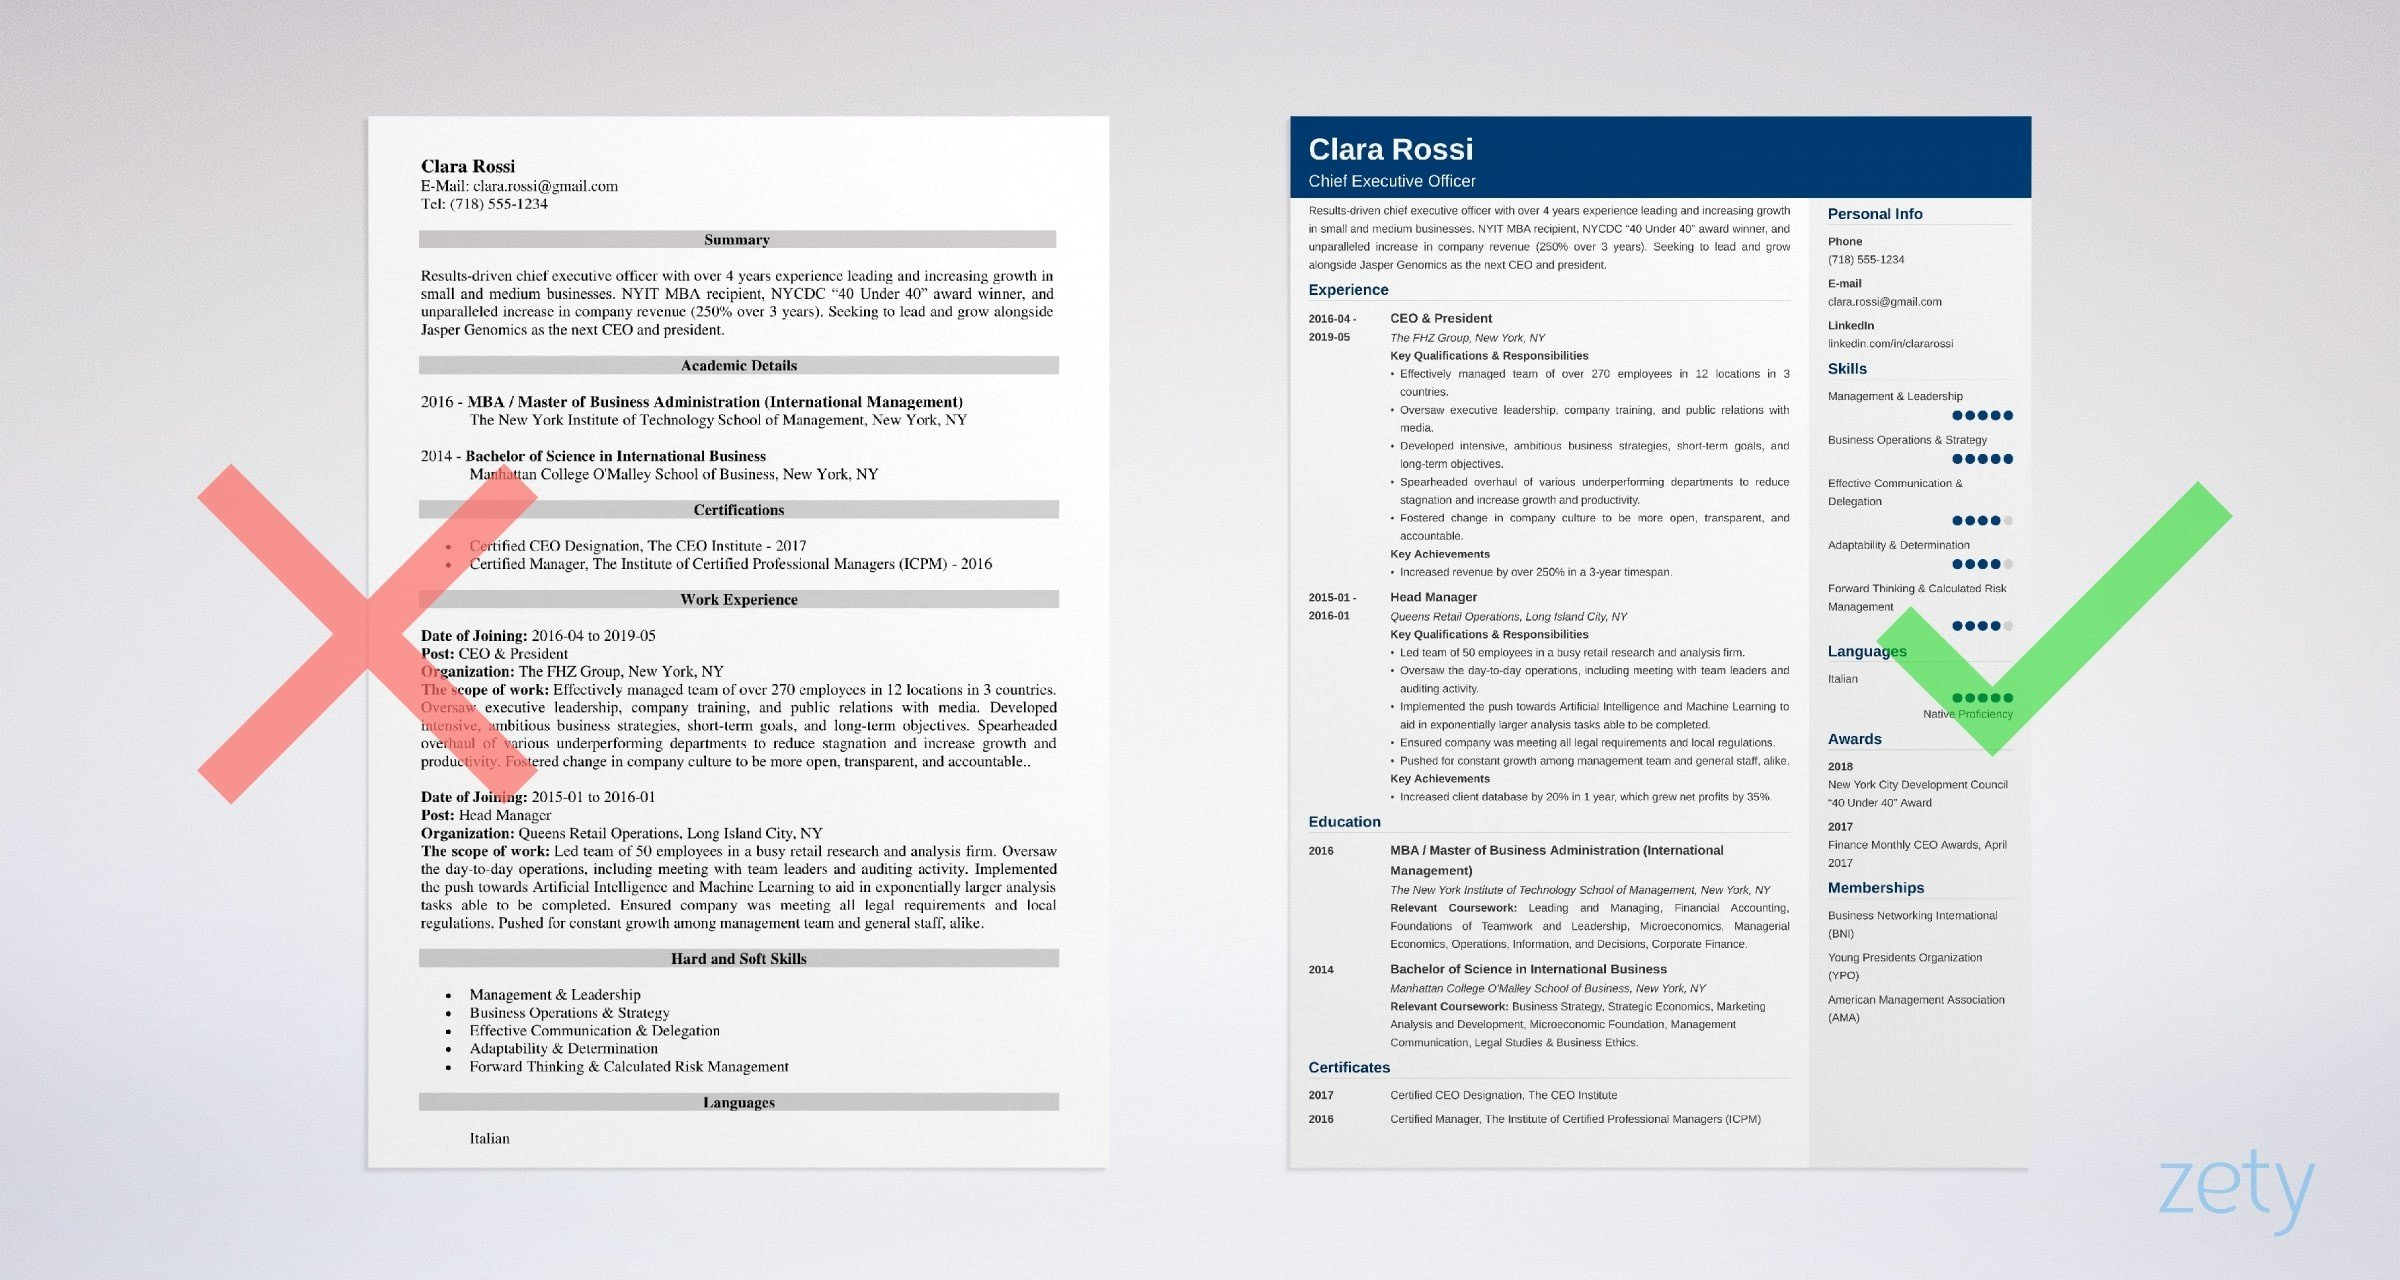 Ceo Resume Example Full Writing Guide 20 Tips